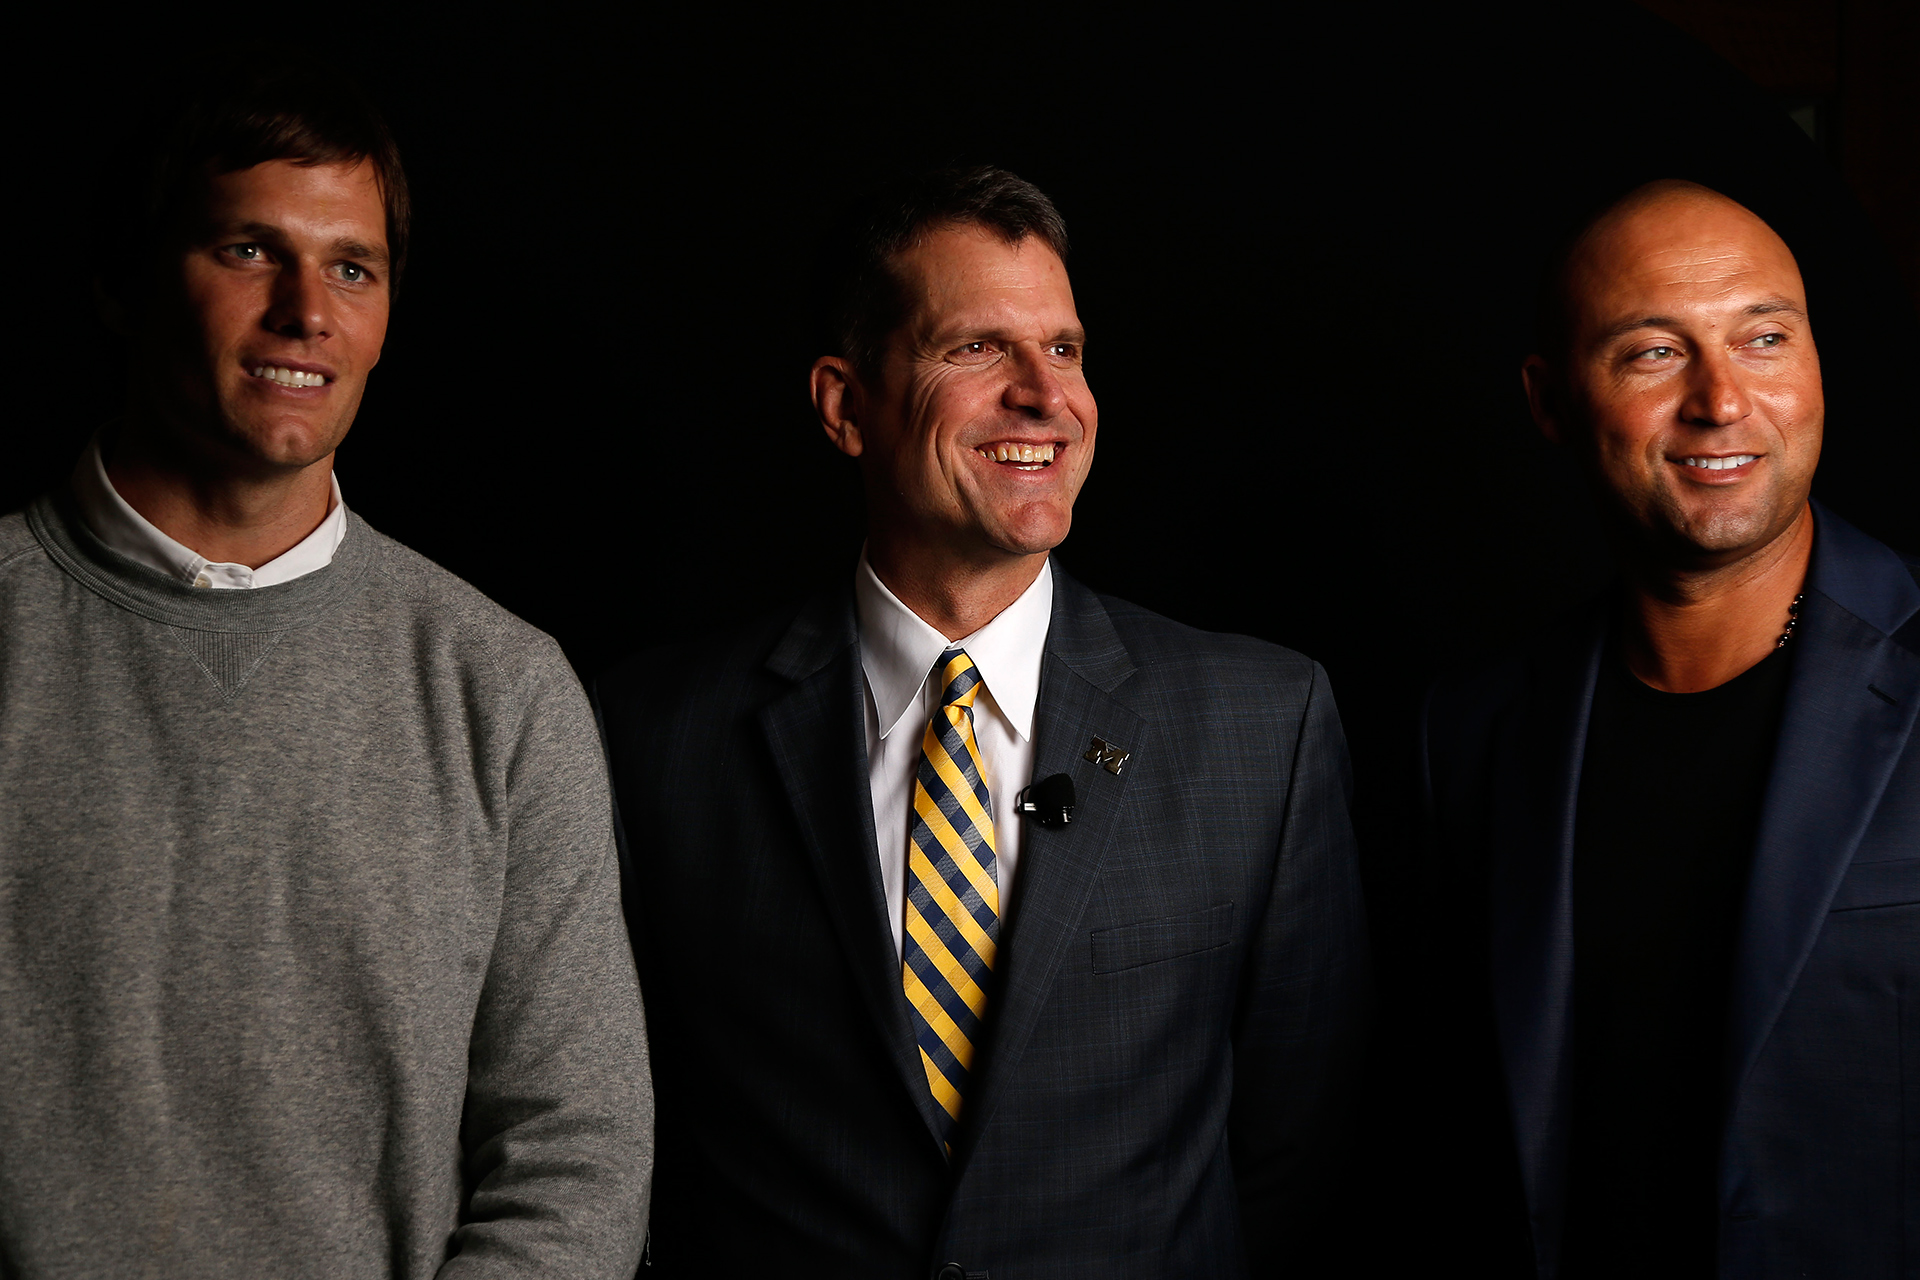 Coach Harbaugh poses for a Michigan family portrait with icons Tom Brady and Derek Jeter.